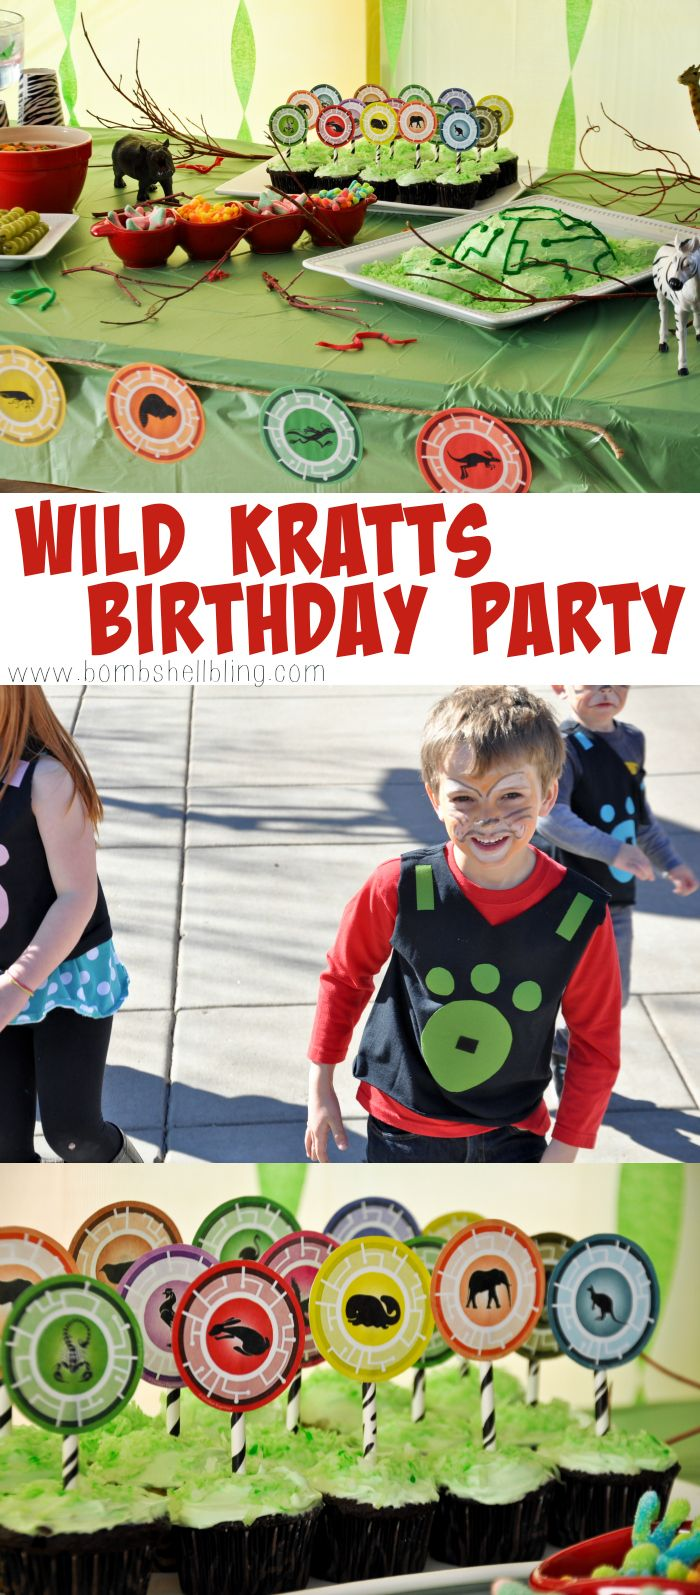 Wild Kratts Birthday Party - Love this @pbskids show!  Great ideas!